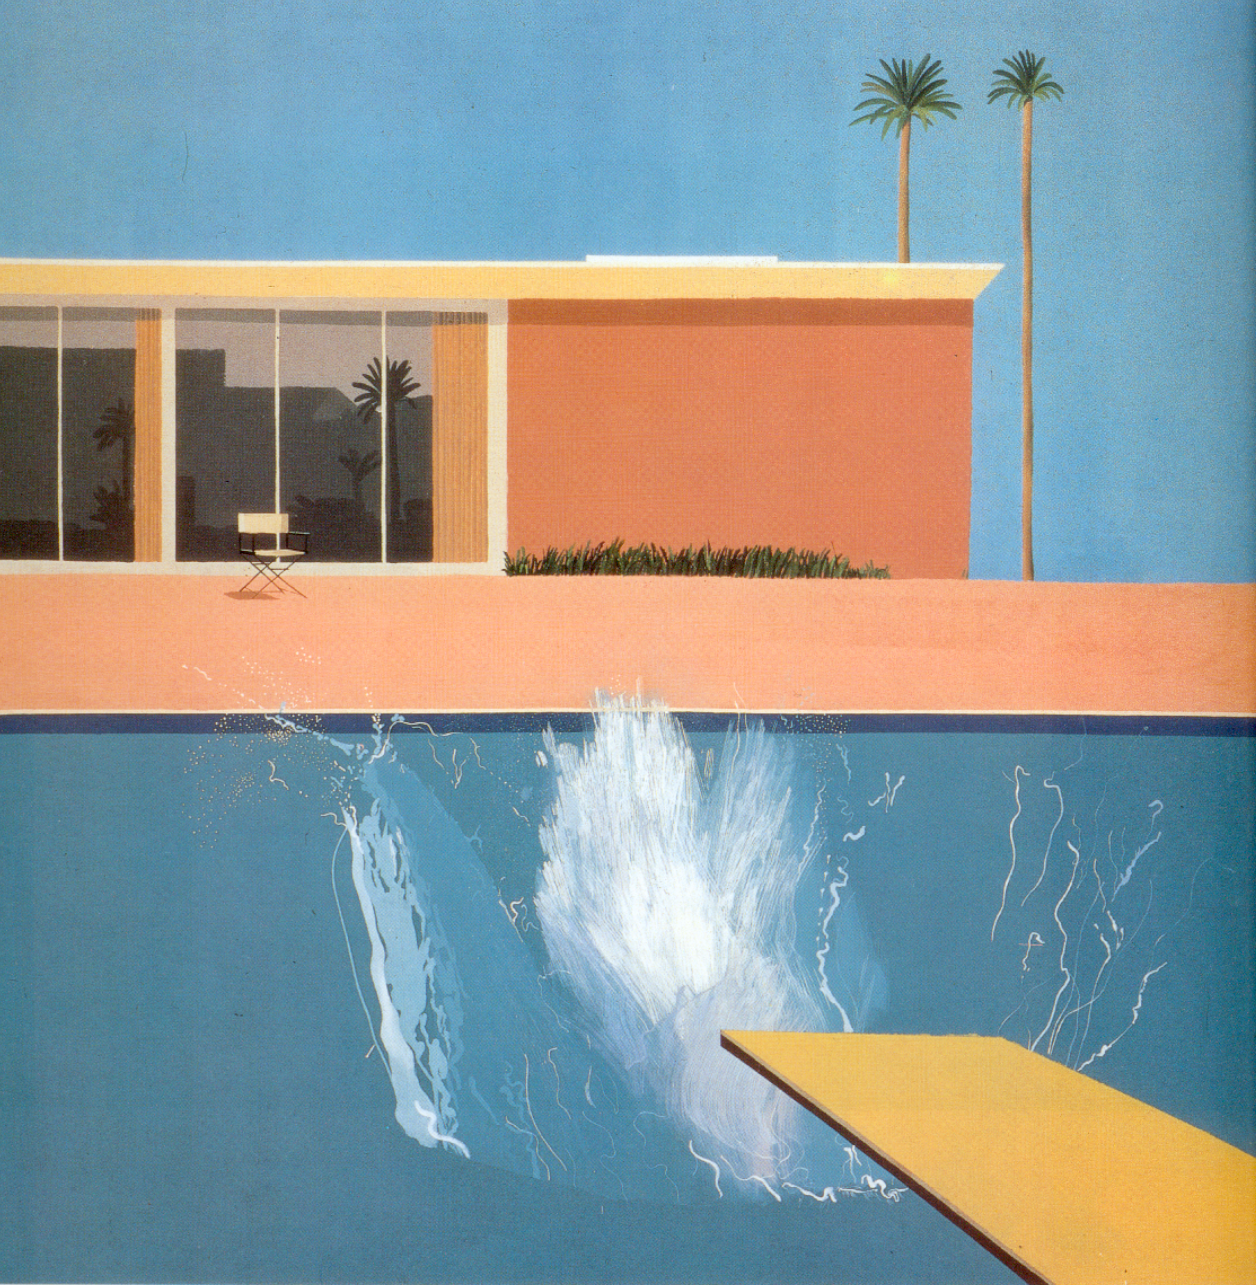 David Hockney A Bigger Splash